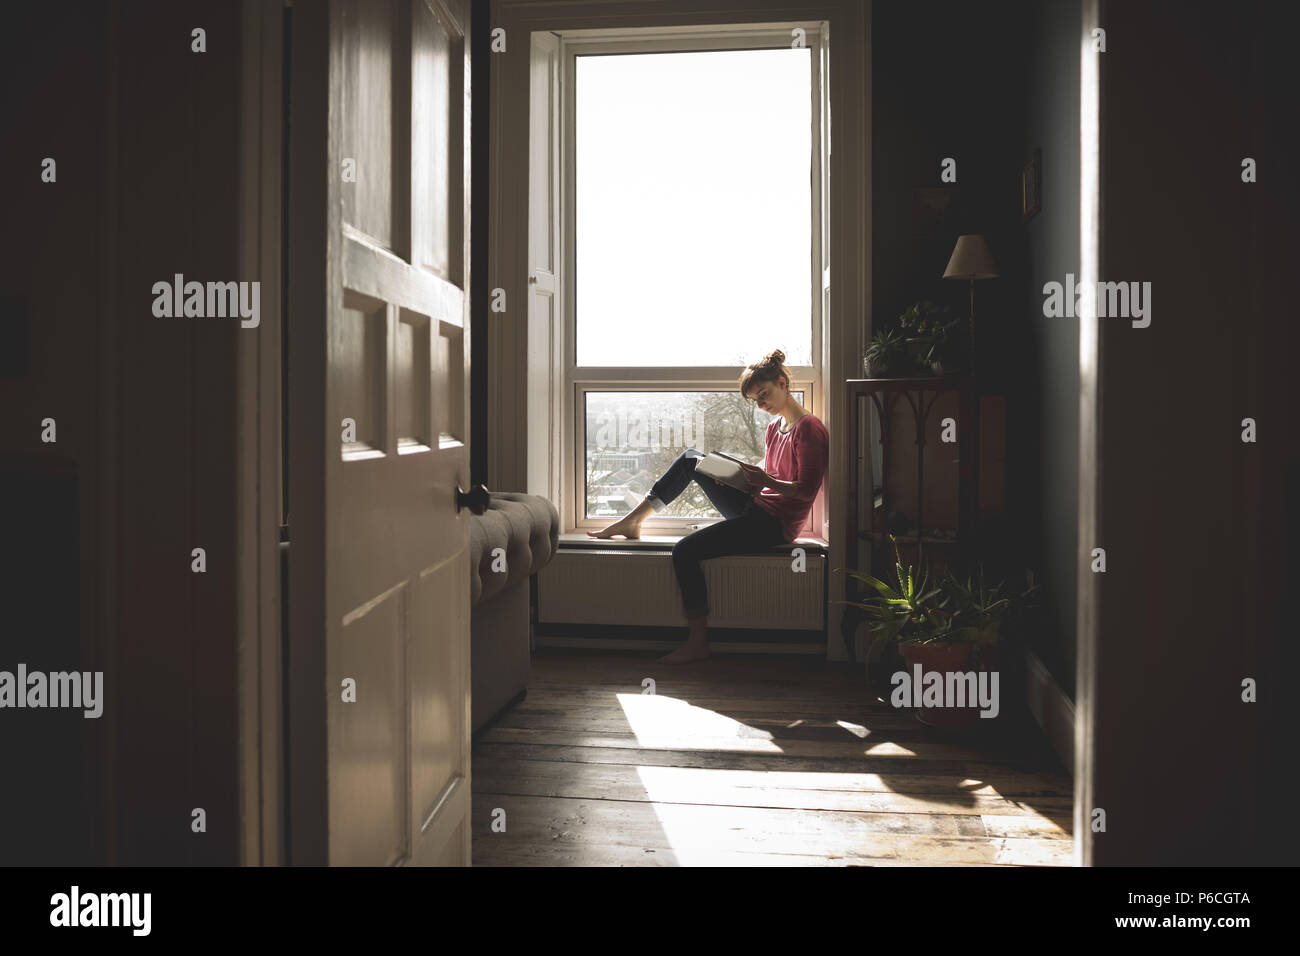 Woman Reading book on window sill Banque D'Images